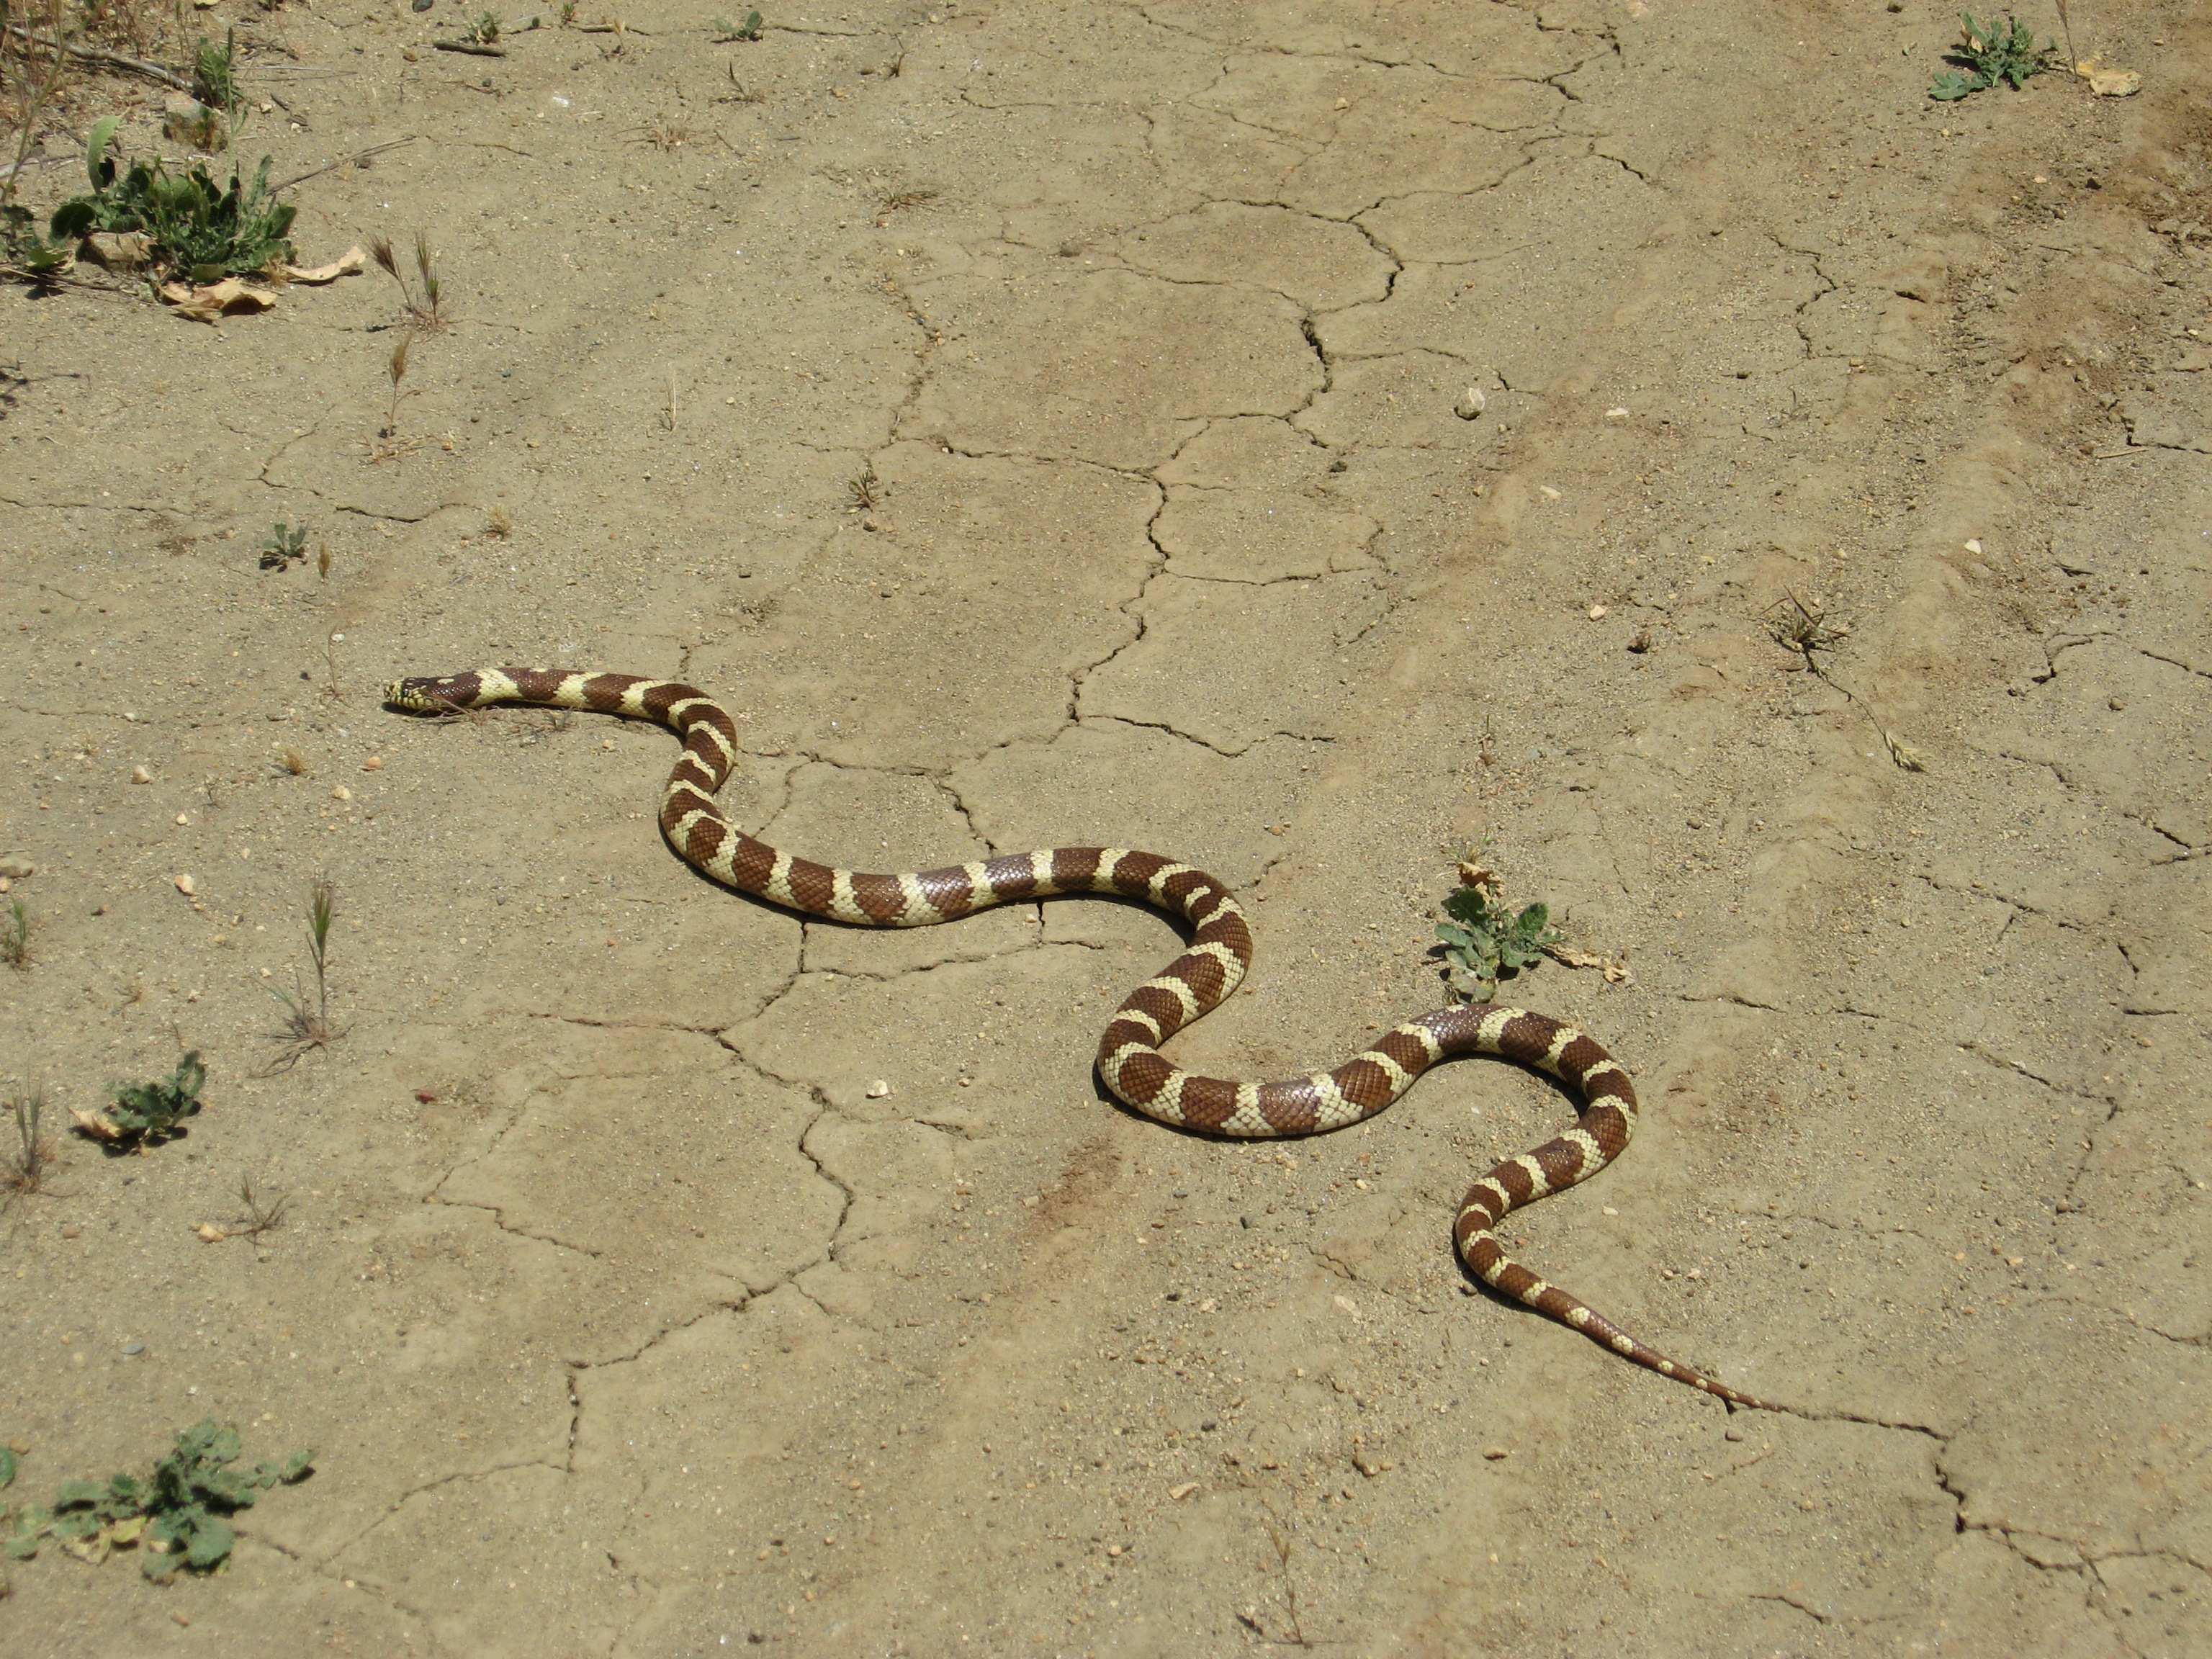 Striped snake on flat, brown surface